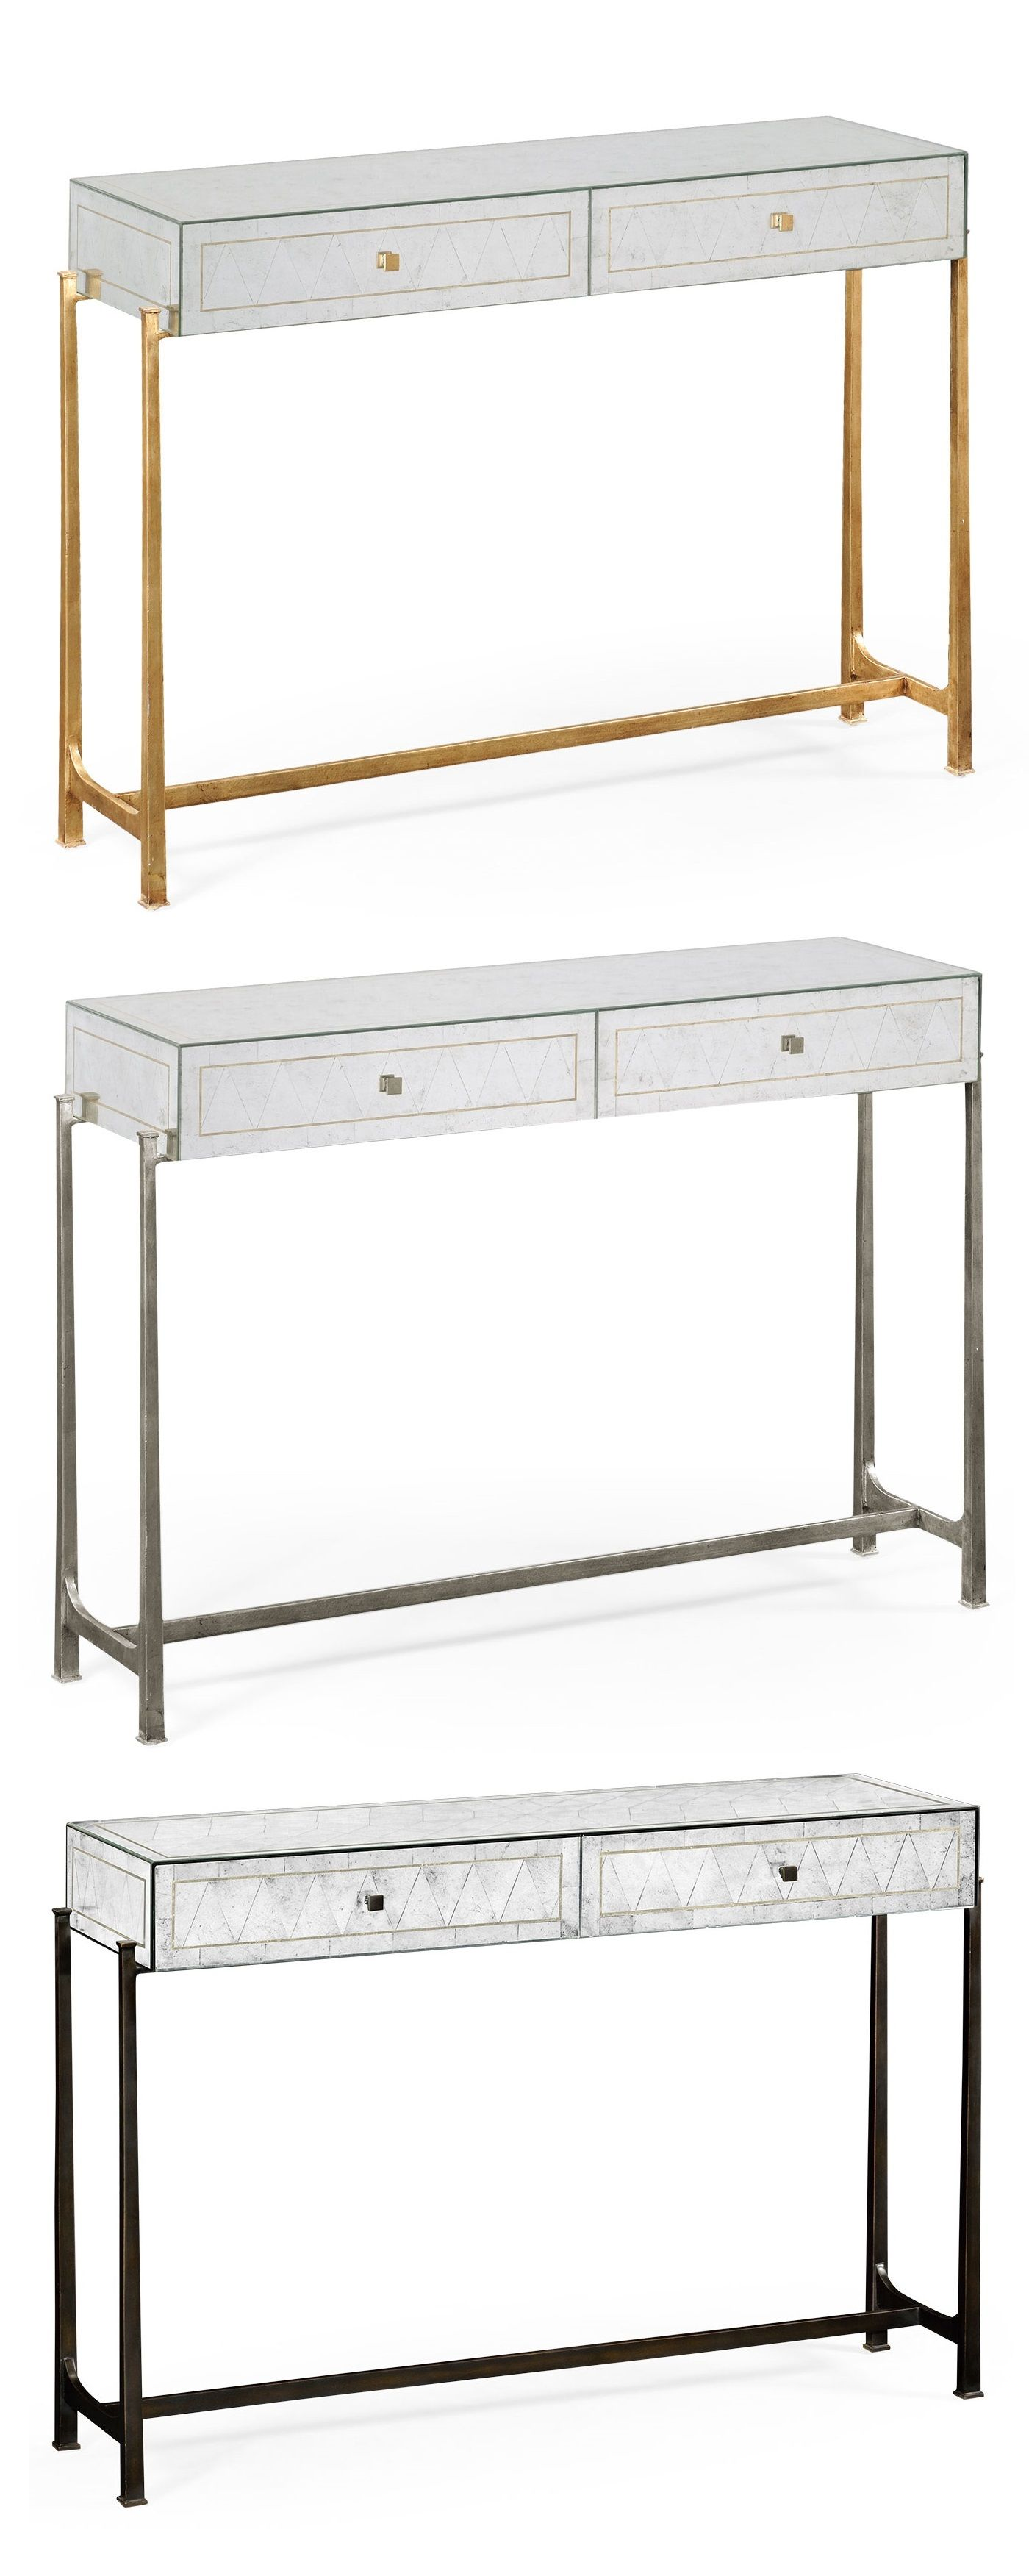 narrow tables narrow table sofa tables console table. Black Bedroom Furniture Sets. Home Design Ideas